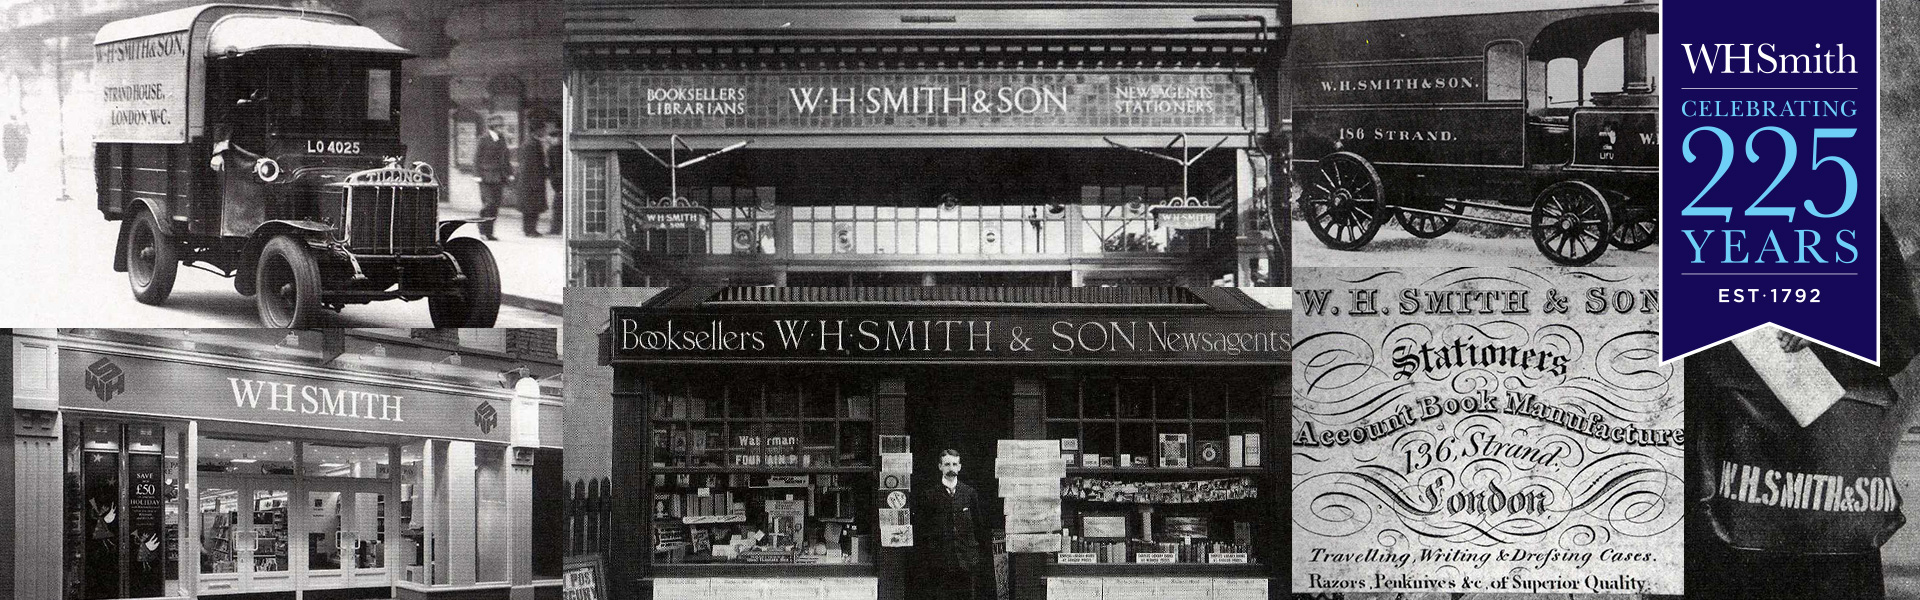 WHSmith Celebrate our 225th Anniversary!